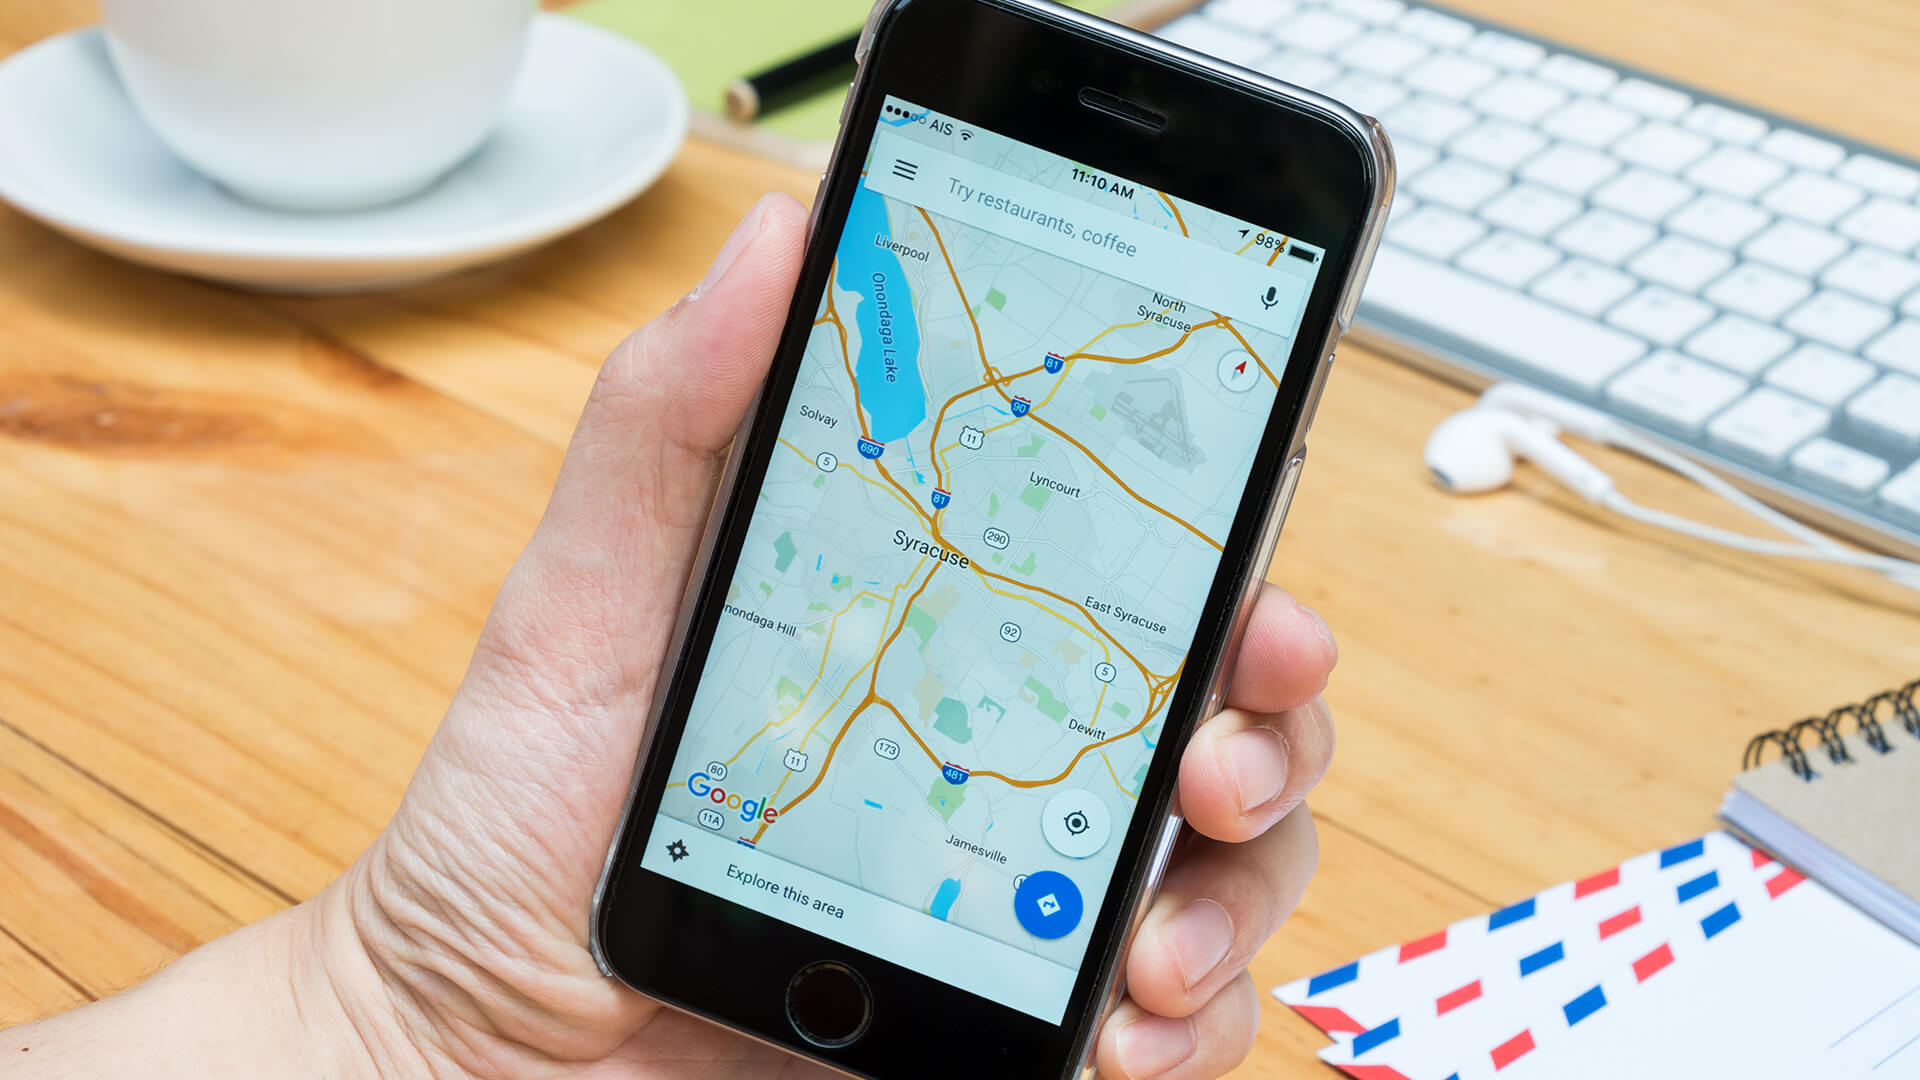 Google Maps new feature lets users create lists of saved places that     Google Maps new feature lets users create lists of saved places that can be  shared   accessed offline